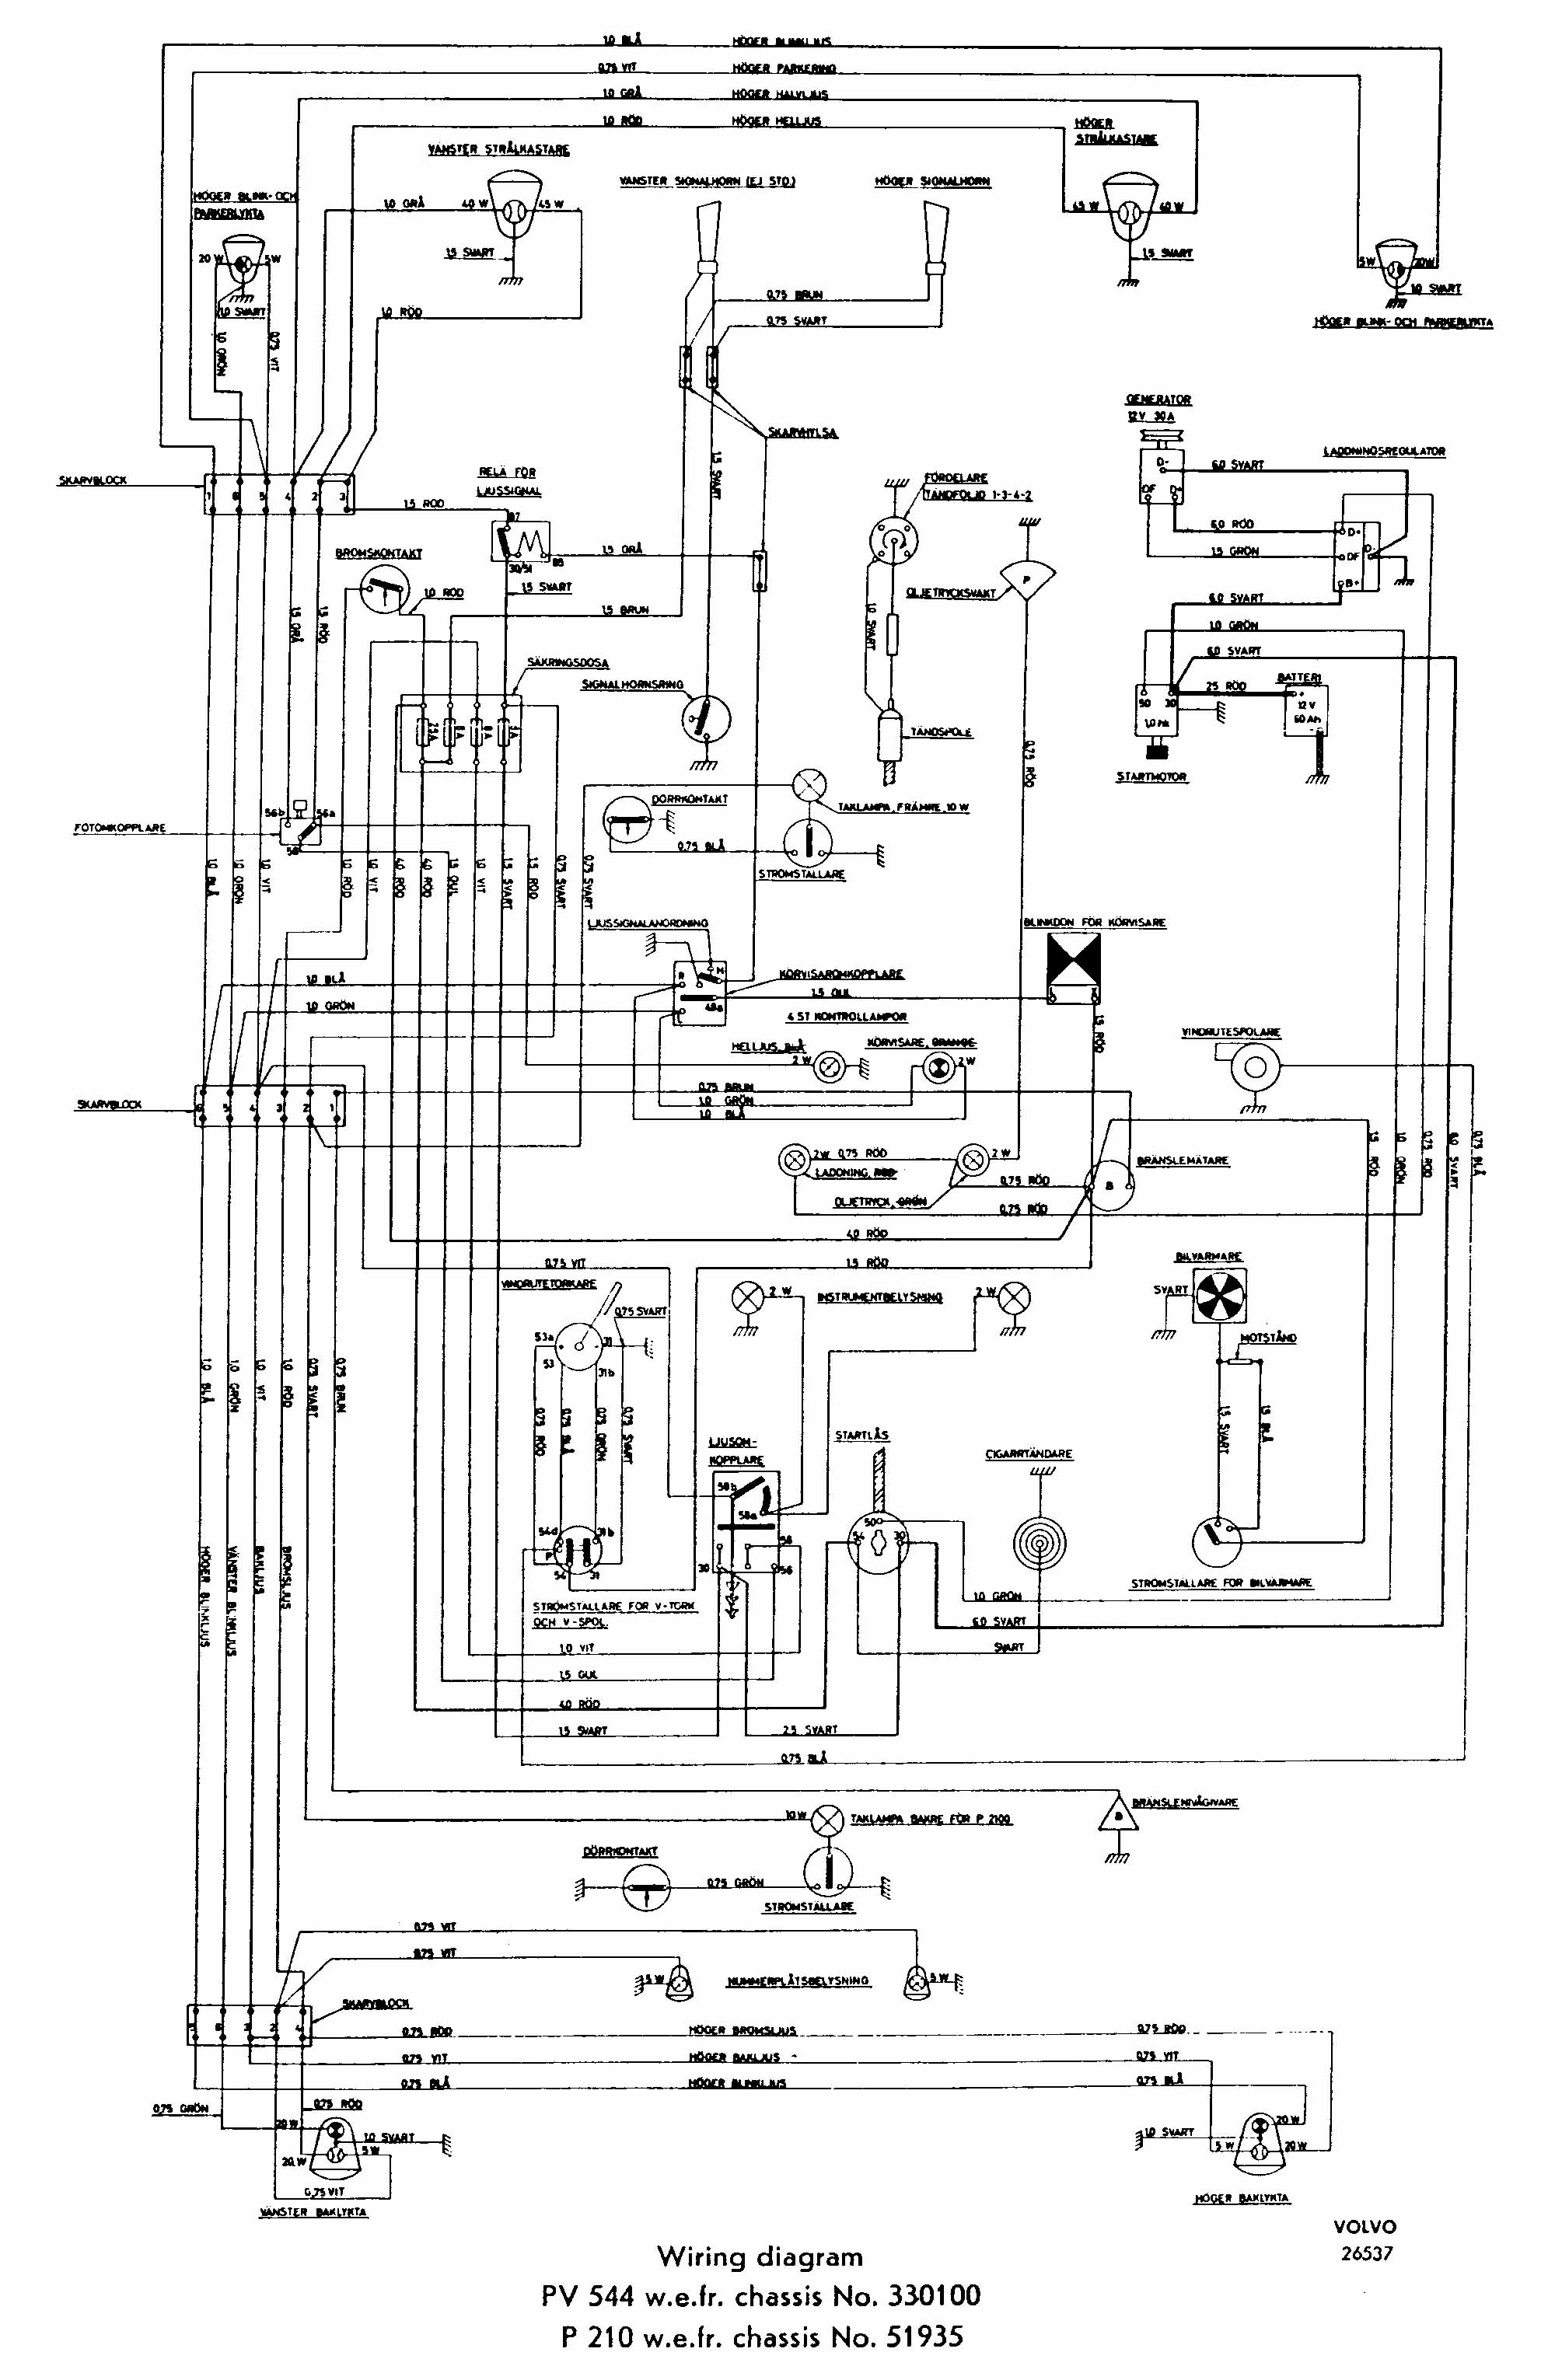 hight resolution of 122s wiring diagram wiring diagram third level porsche 968 wiring diagram volvo 122 1967 wiring diagram